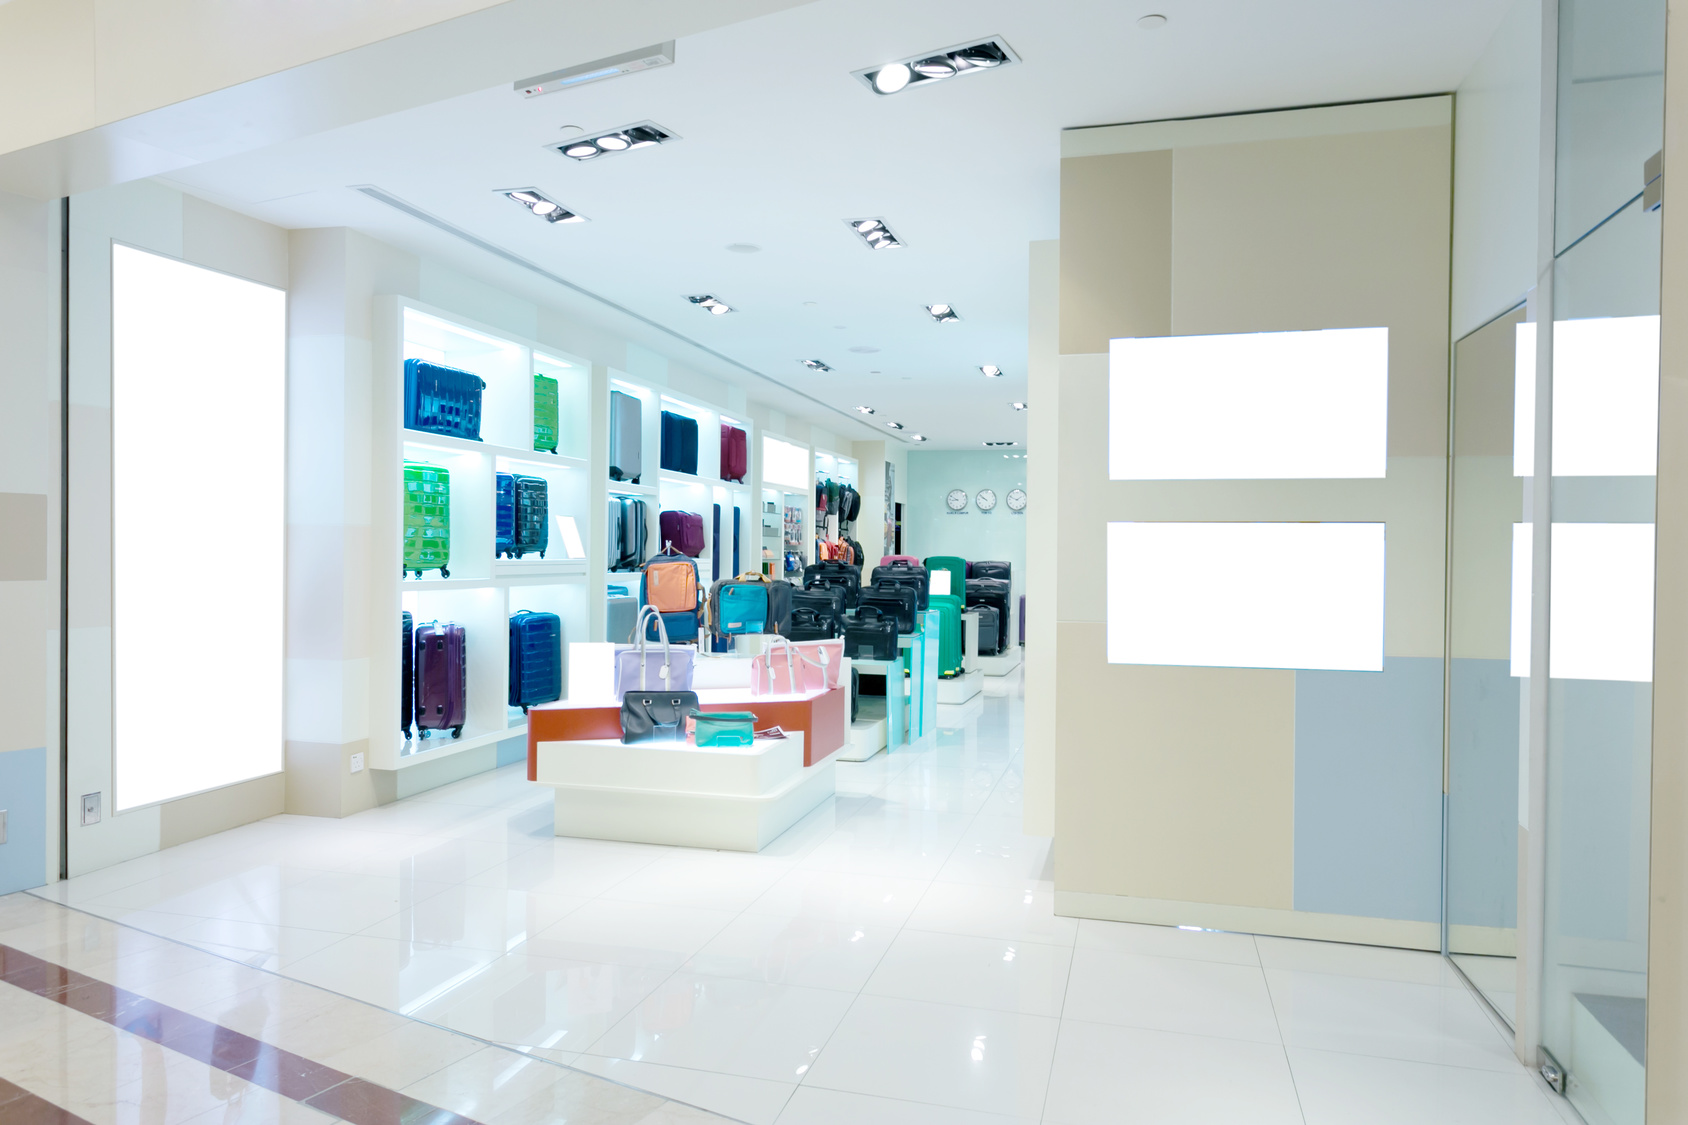 Commercial flooring in Tucson, AZ from Definitive Designs